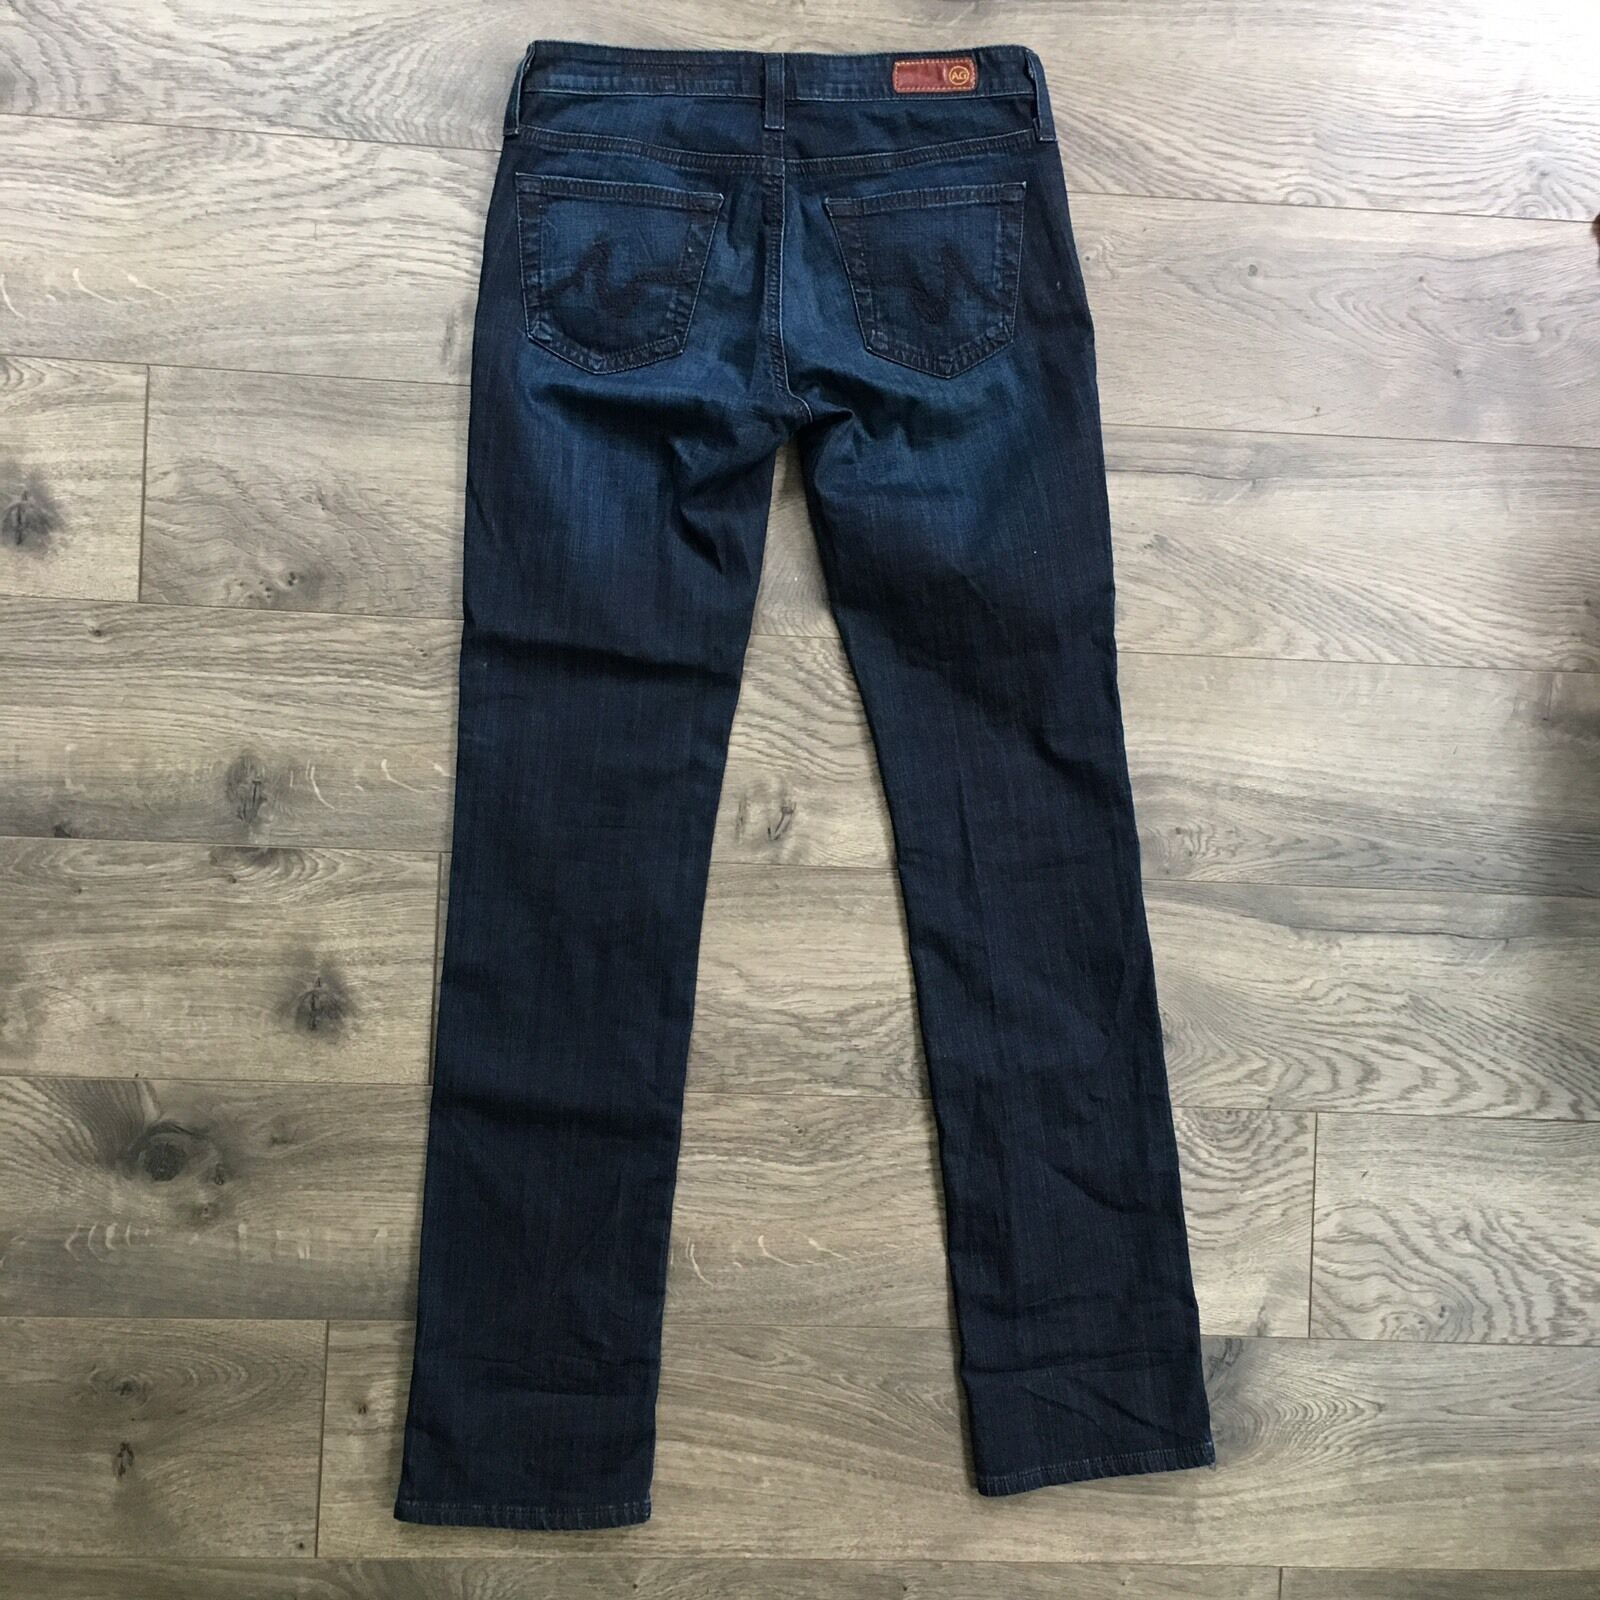 AG Adriano goldschmied The Willow Denim Jeans Pants Woman's 25R